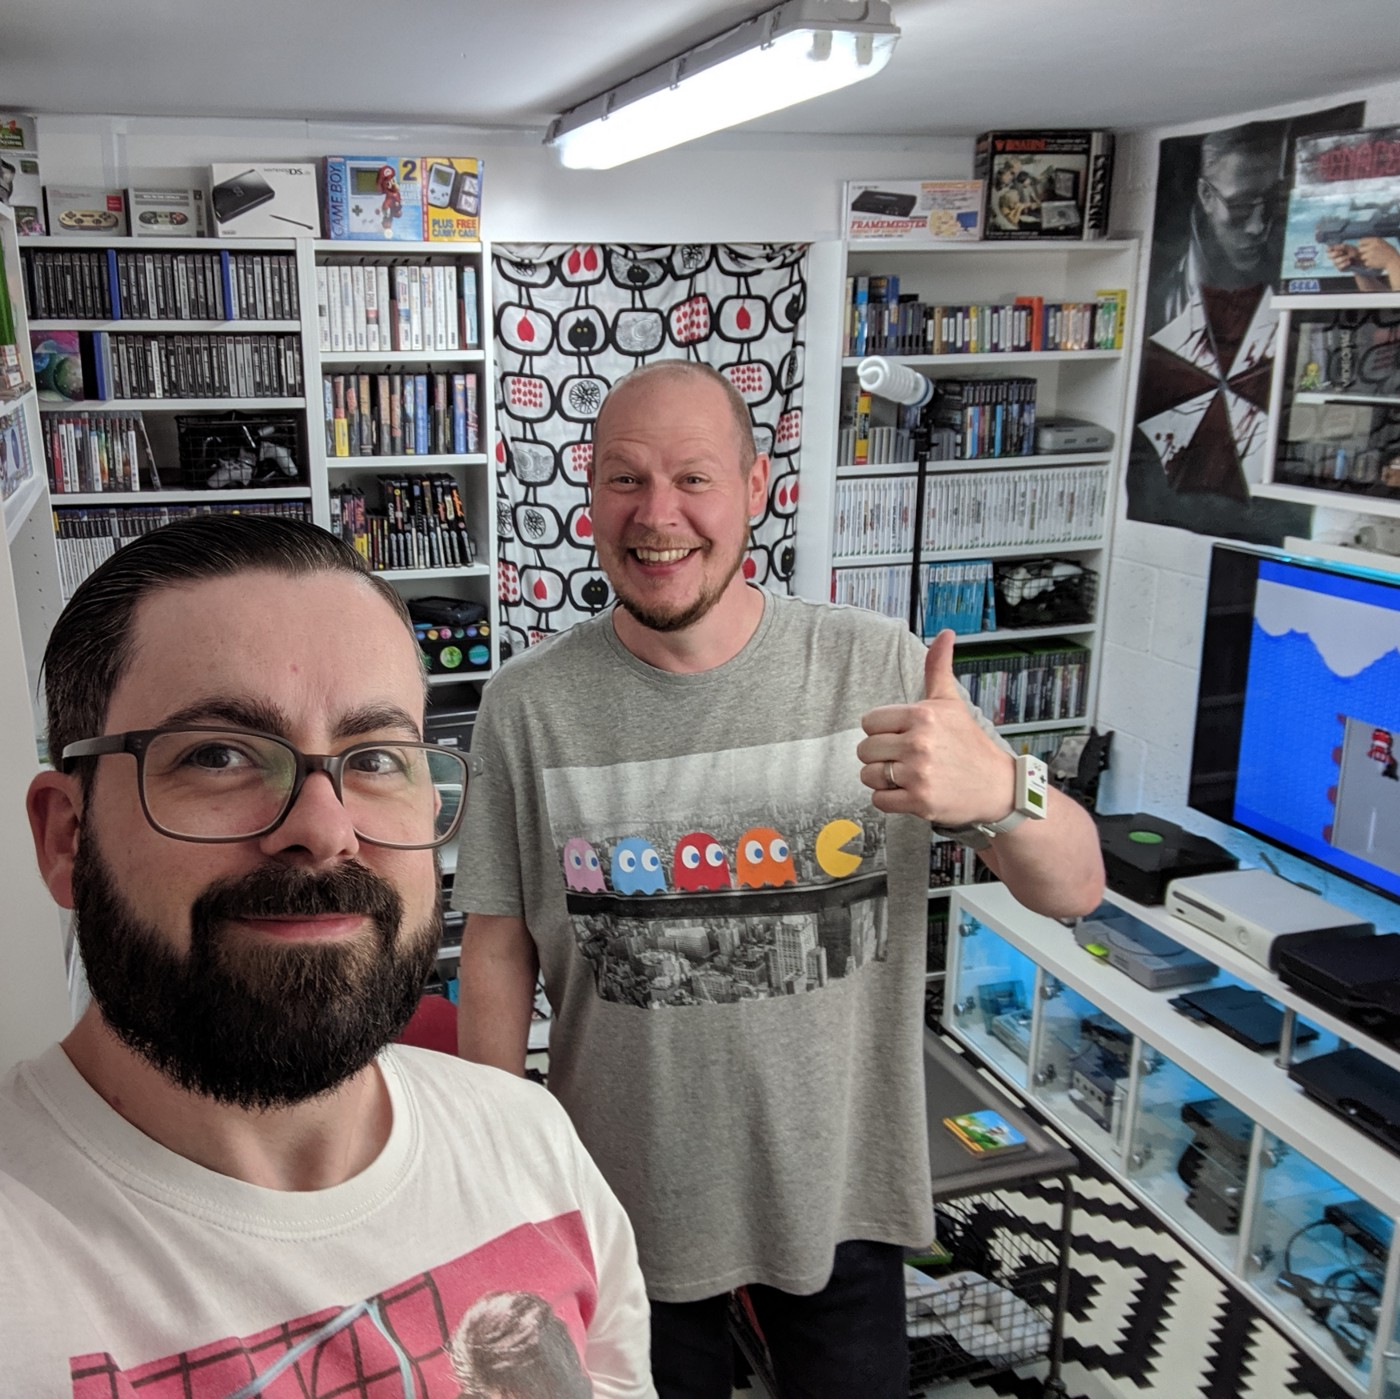 James and Mark, the Garage Gamers.